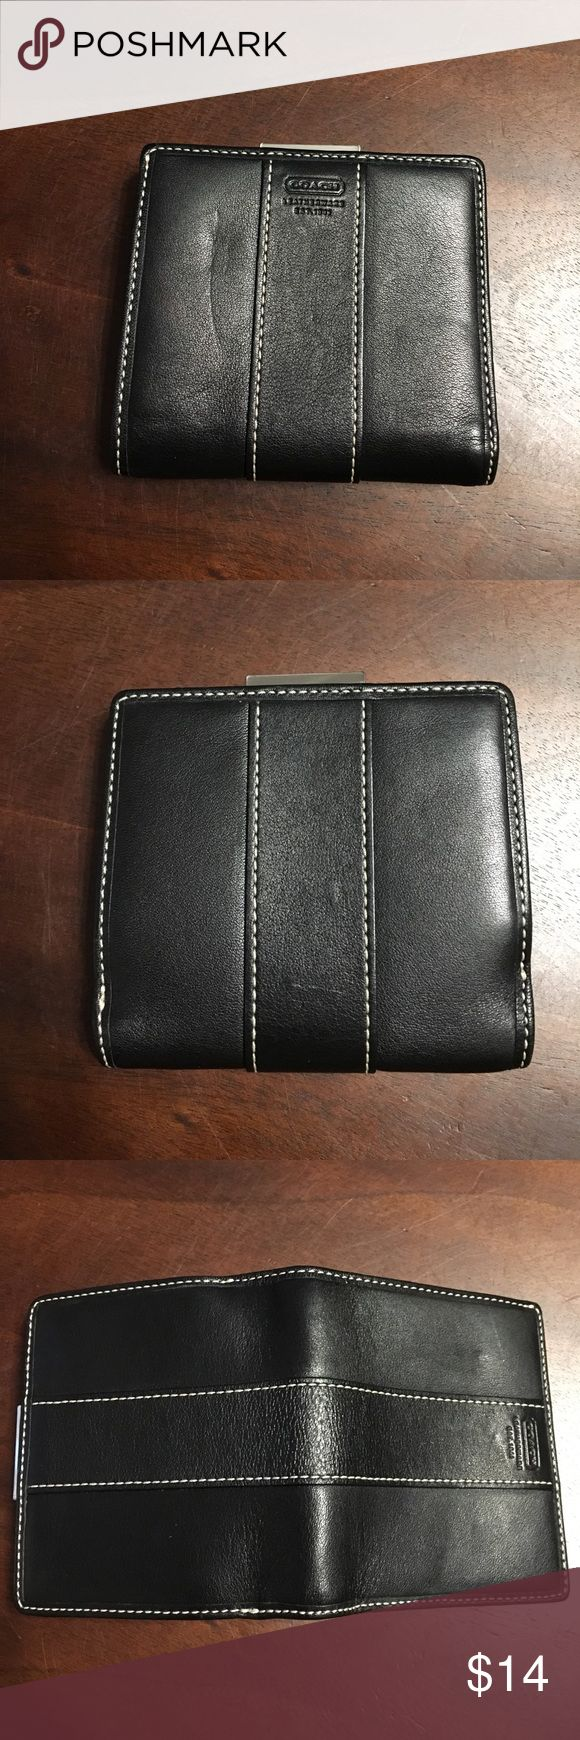 Coach Brand Wallet Small wallet Coach Bags Wallets